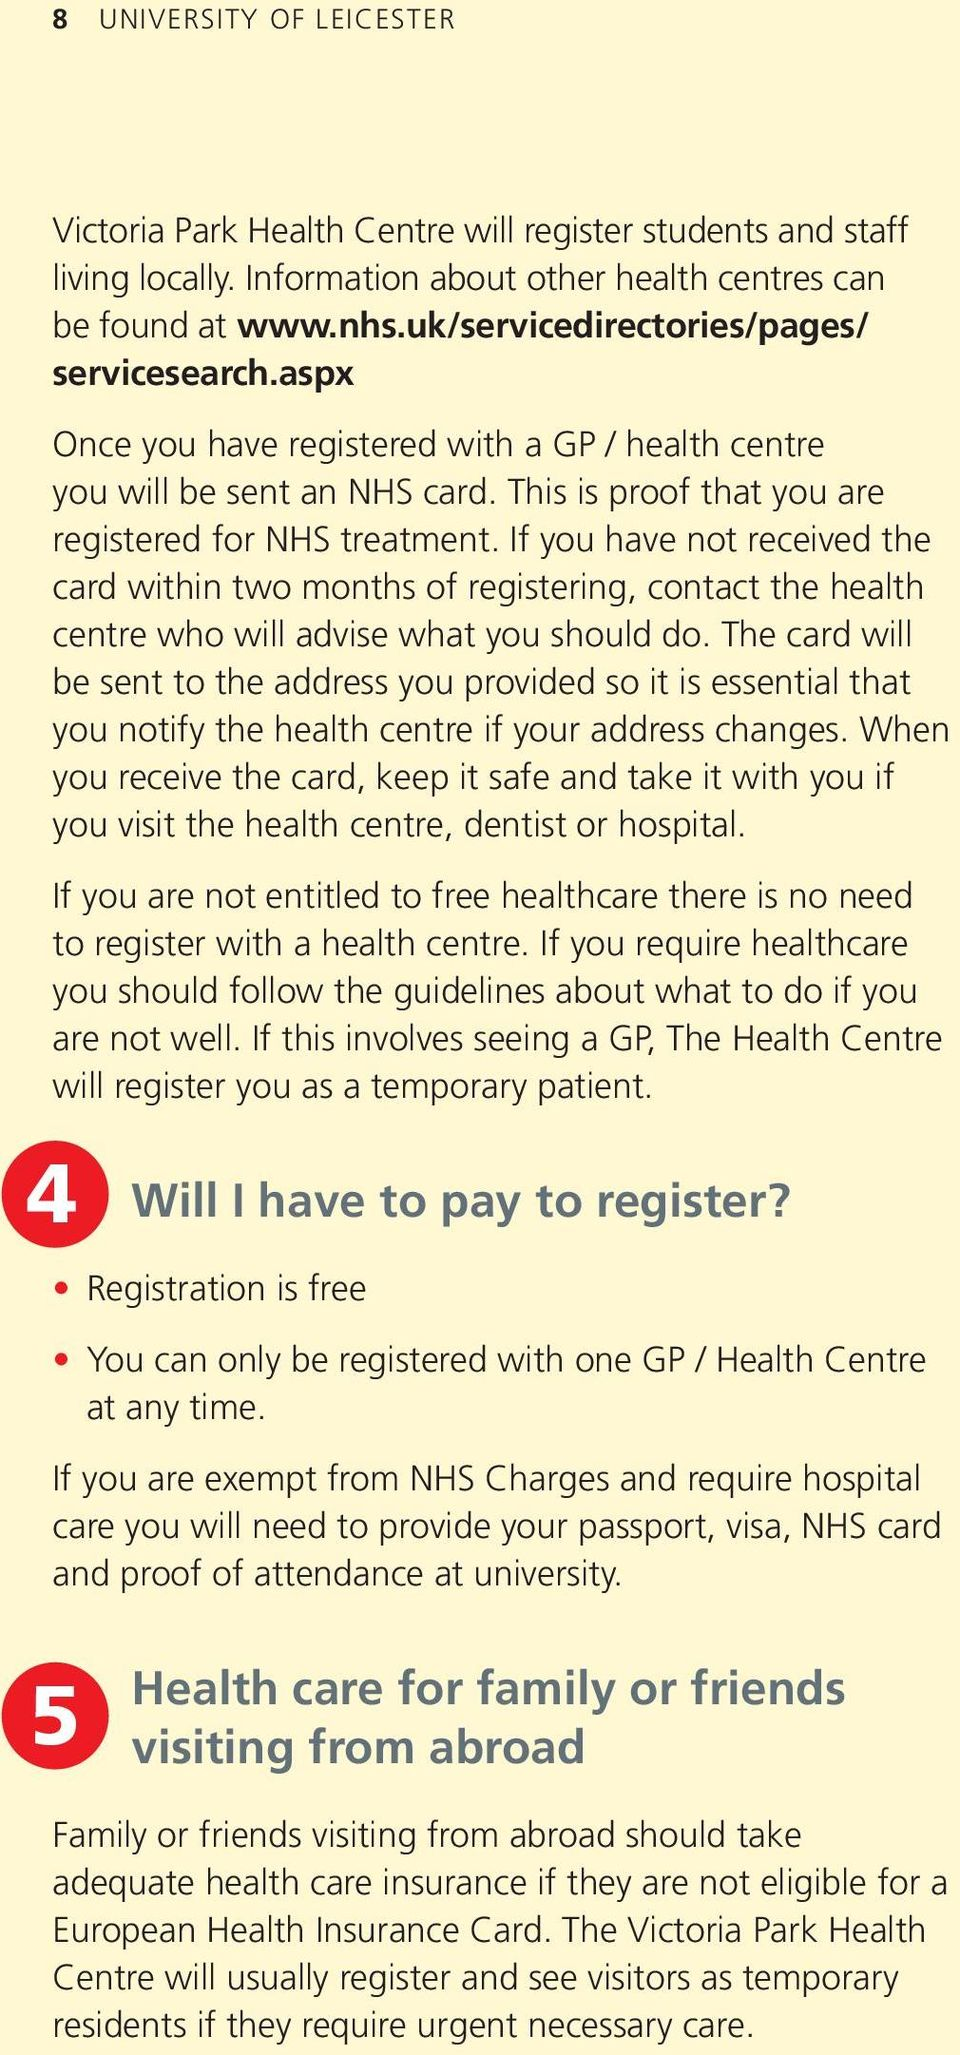 If you have not received the card within two months of registering, contact the health centre who will advise what you should do.